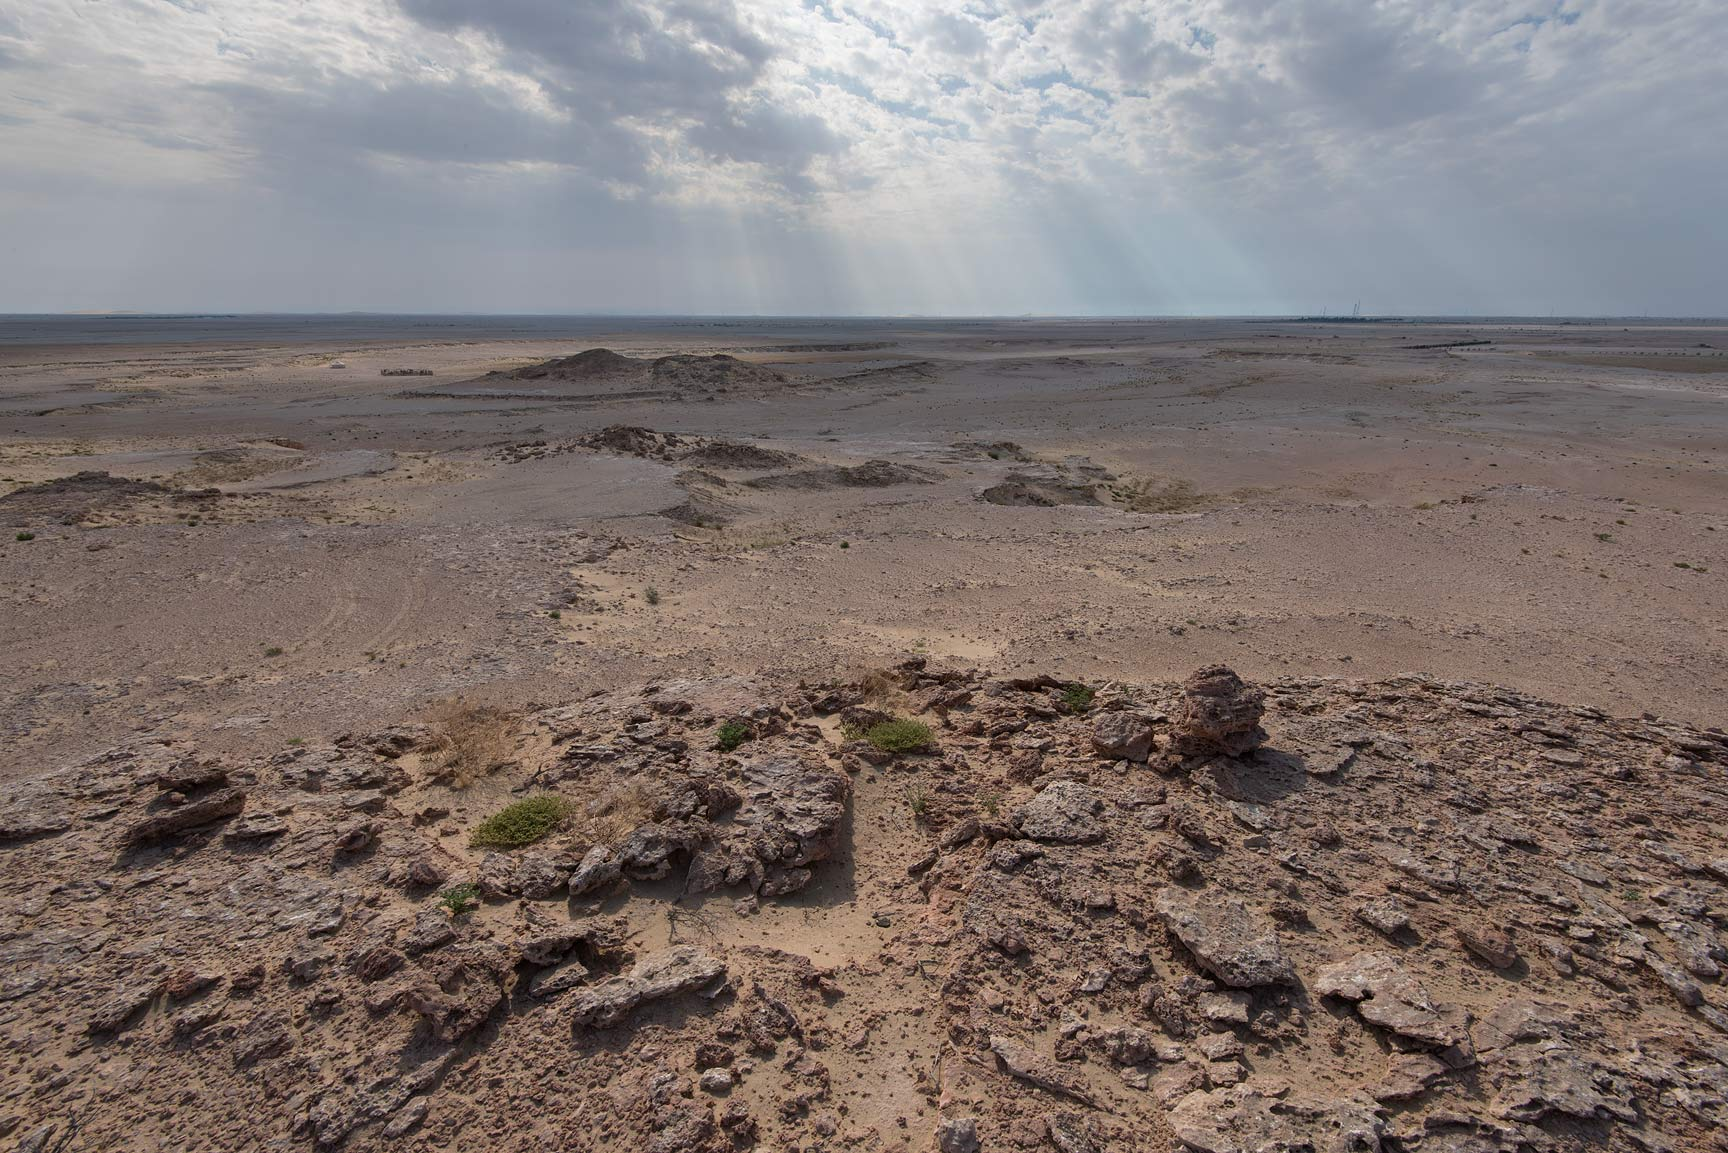 View of desert from limestone cliffs in Harrarah (Al Kharrarah). Southern Qatar